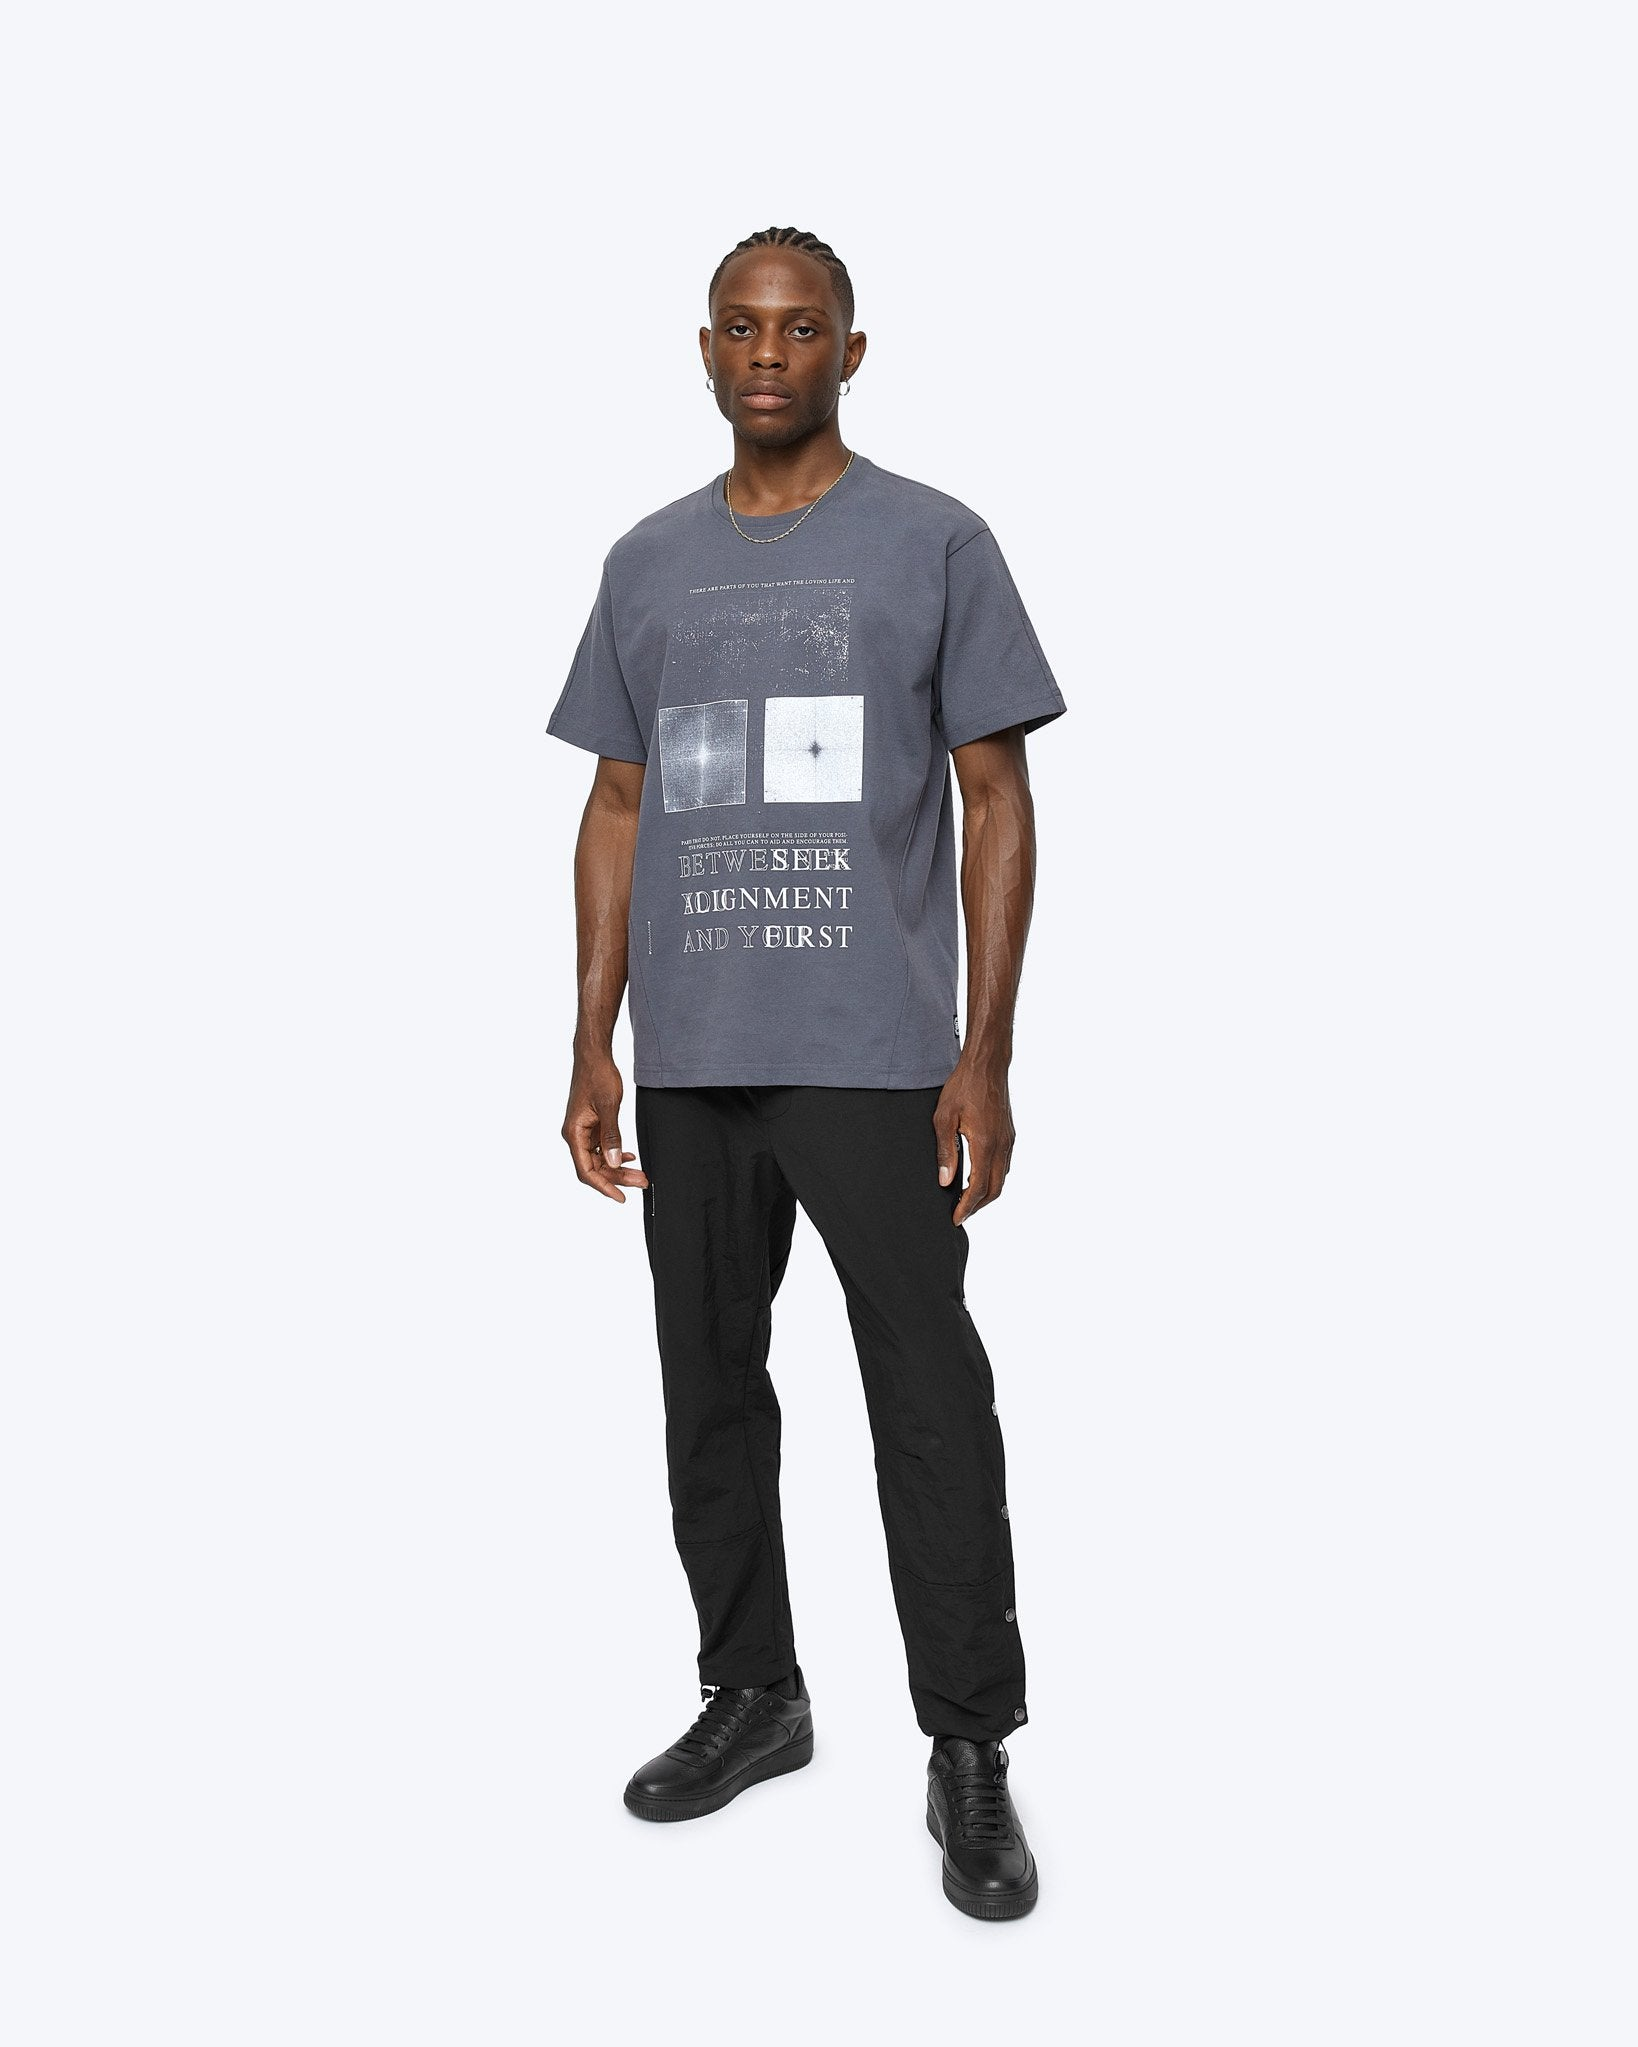 REIGNING CHAMP M'S T-SHIRTS HEAVYWEIGHT JERSEY ALIGNMENT T-SHIRT